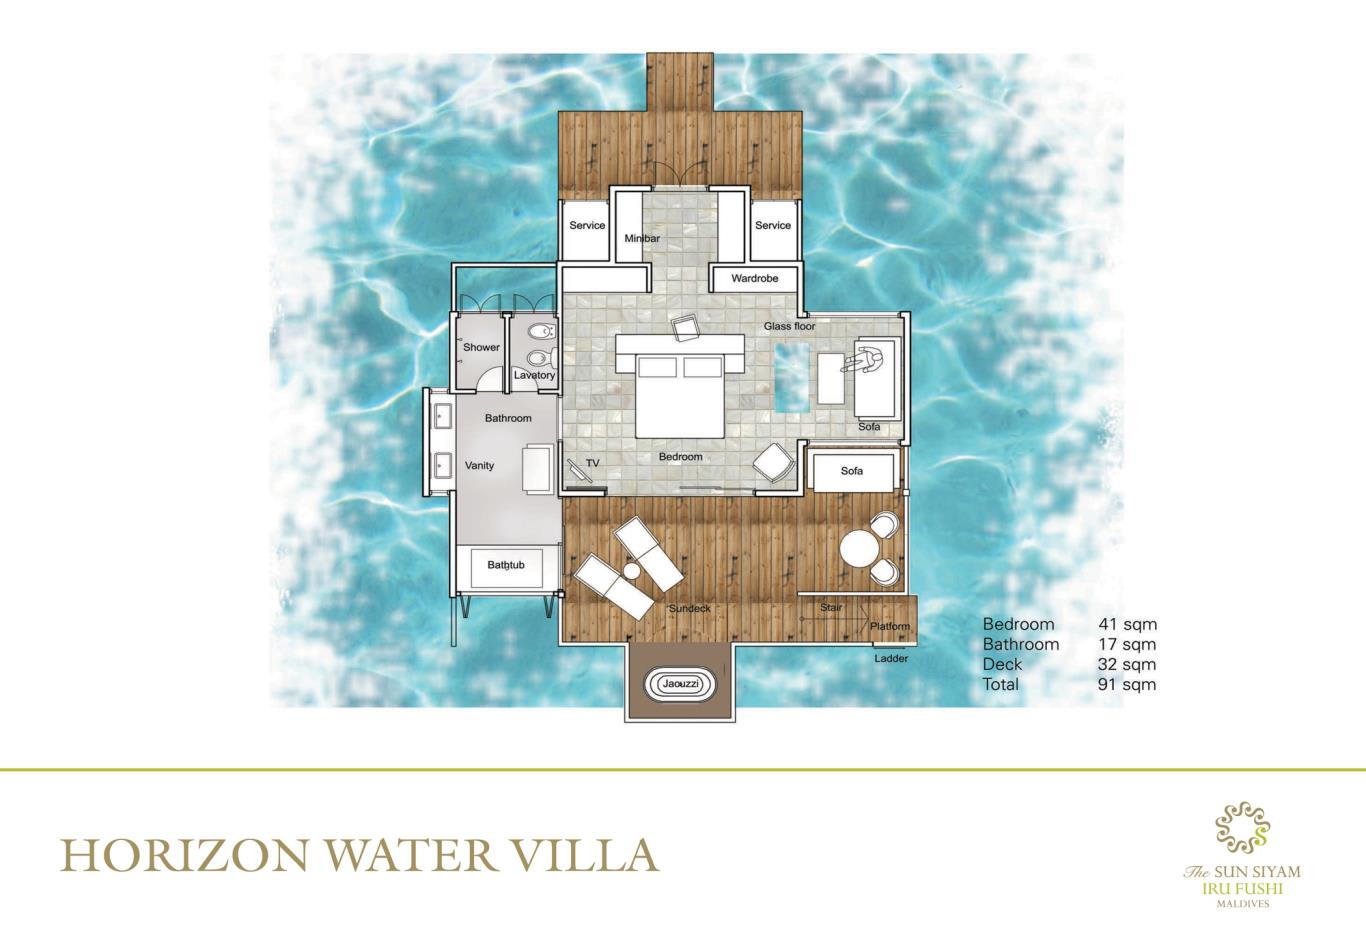 Horizon Water Villa Floorplan